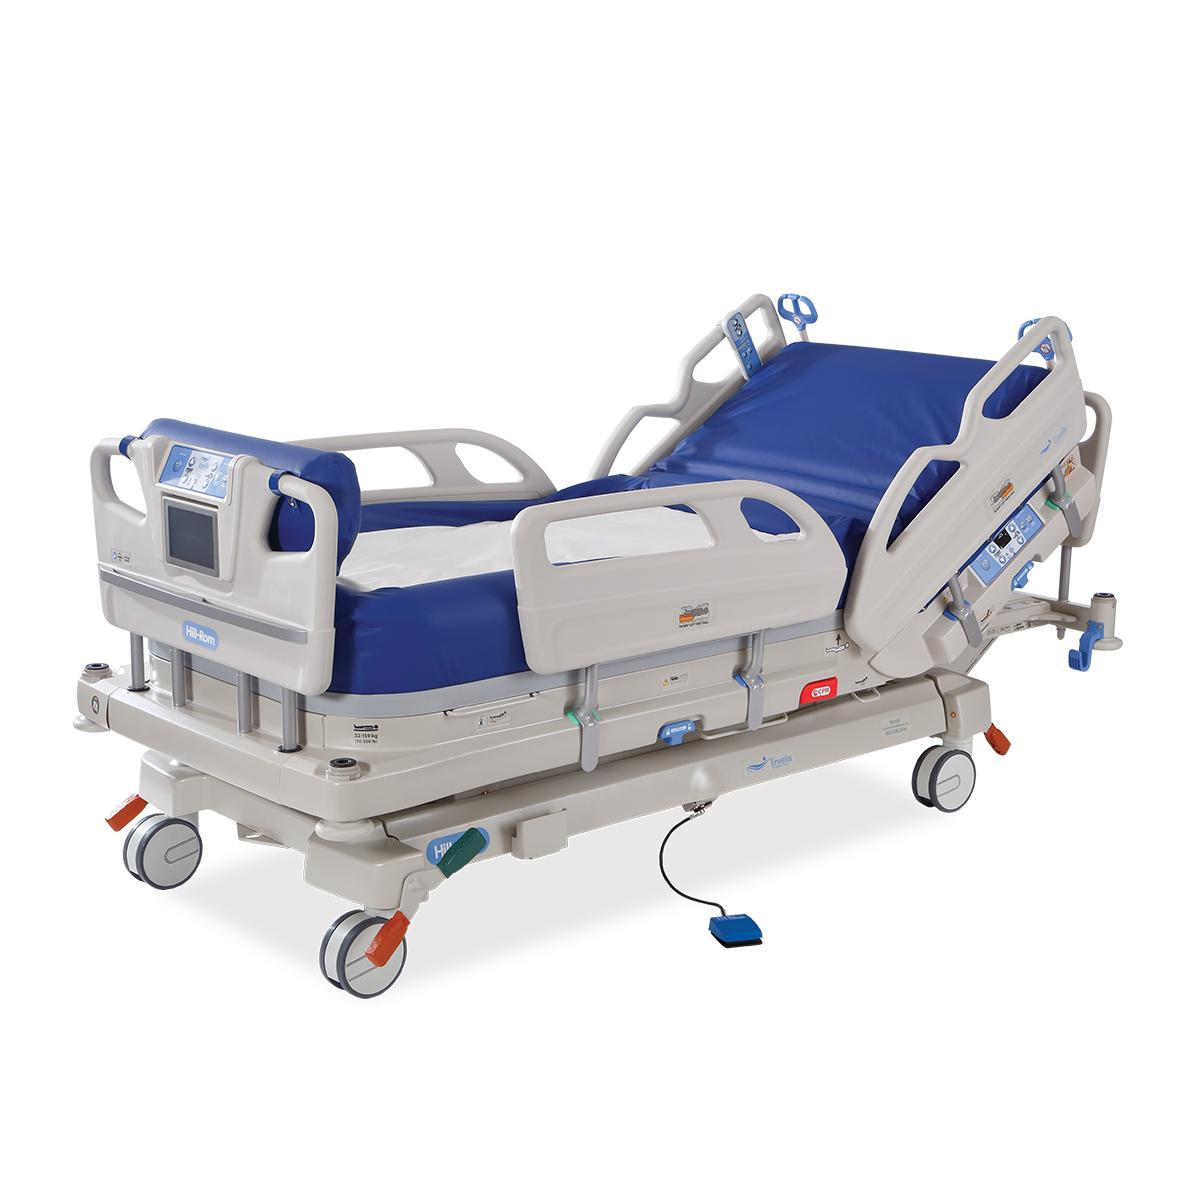 A Hillrom™ Envella therapy bed with an air-fluidized surface. The head position is slightly inclined and the siderails are up.